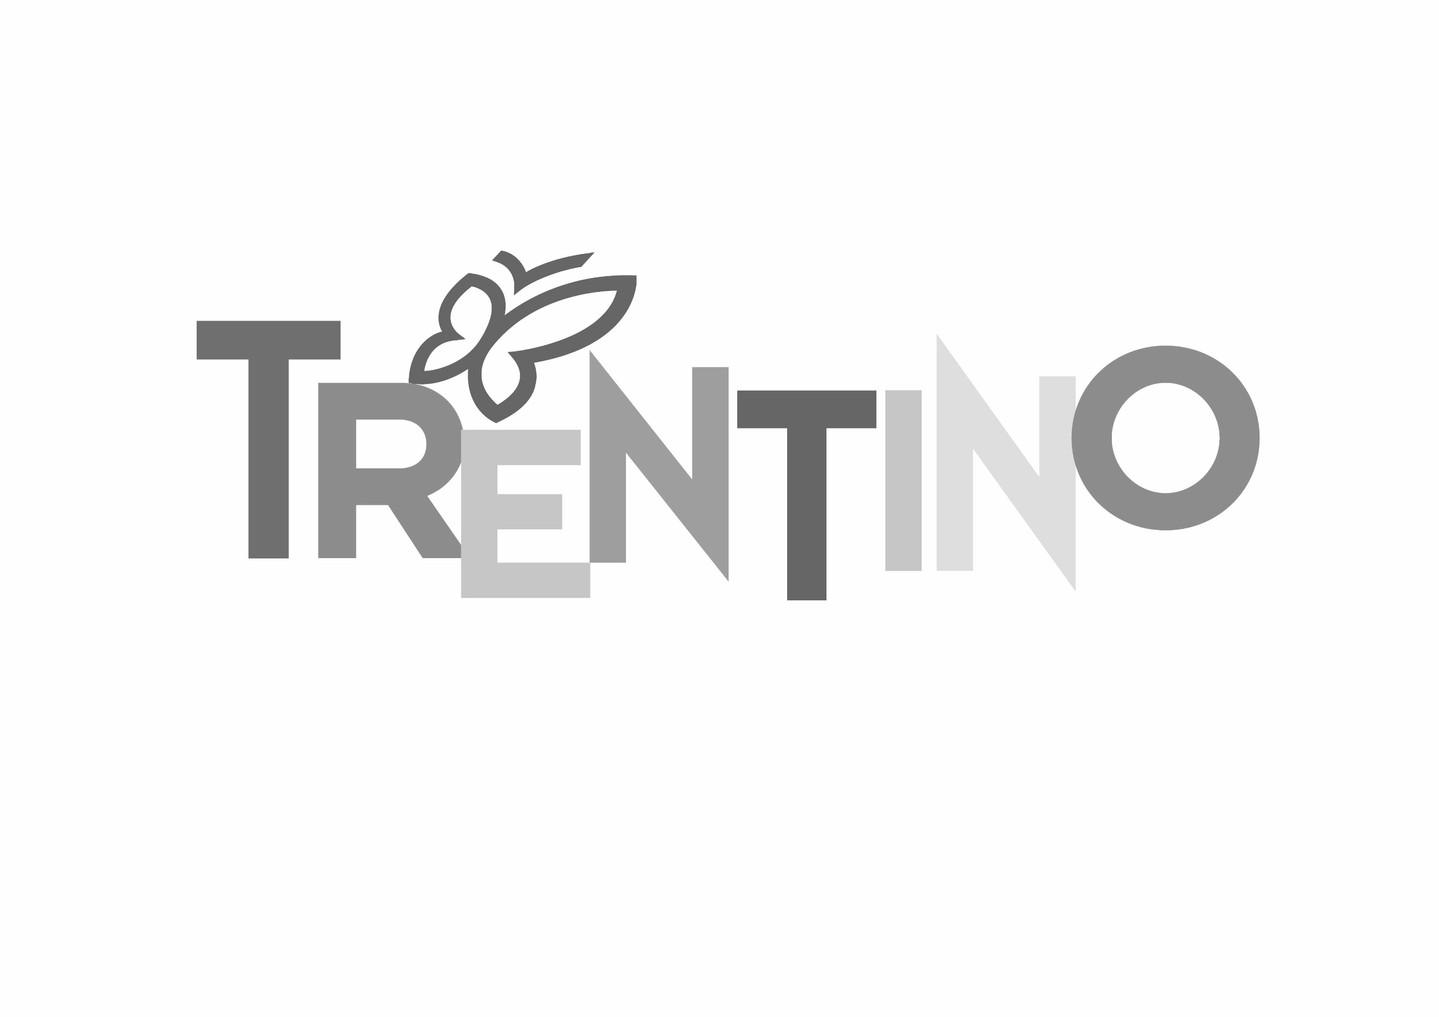 trentino_logo_multicolour-01_edited.jpg